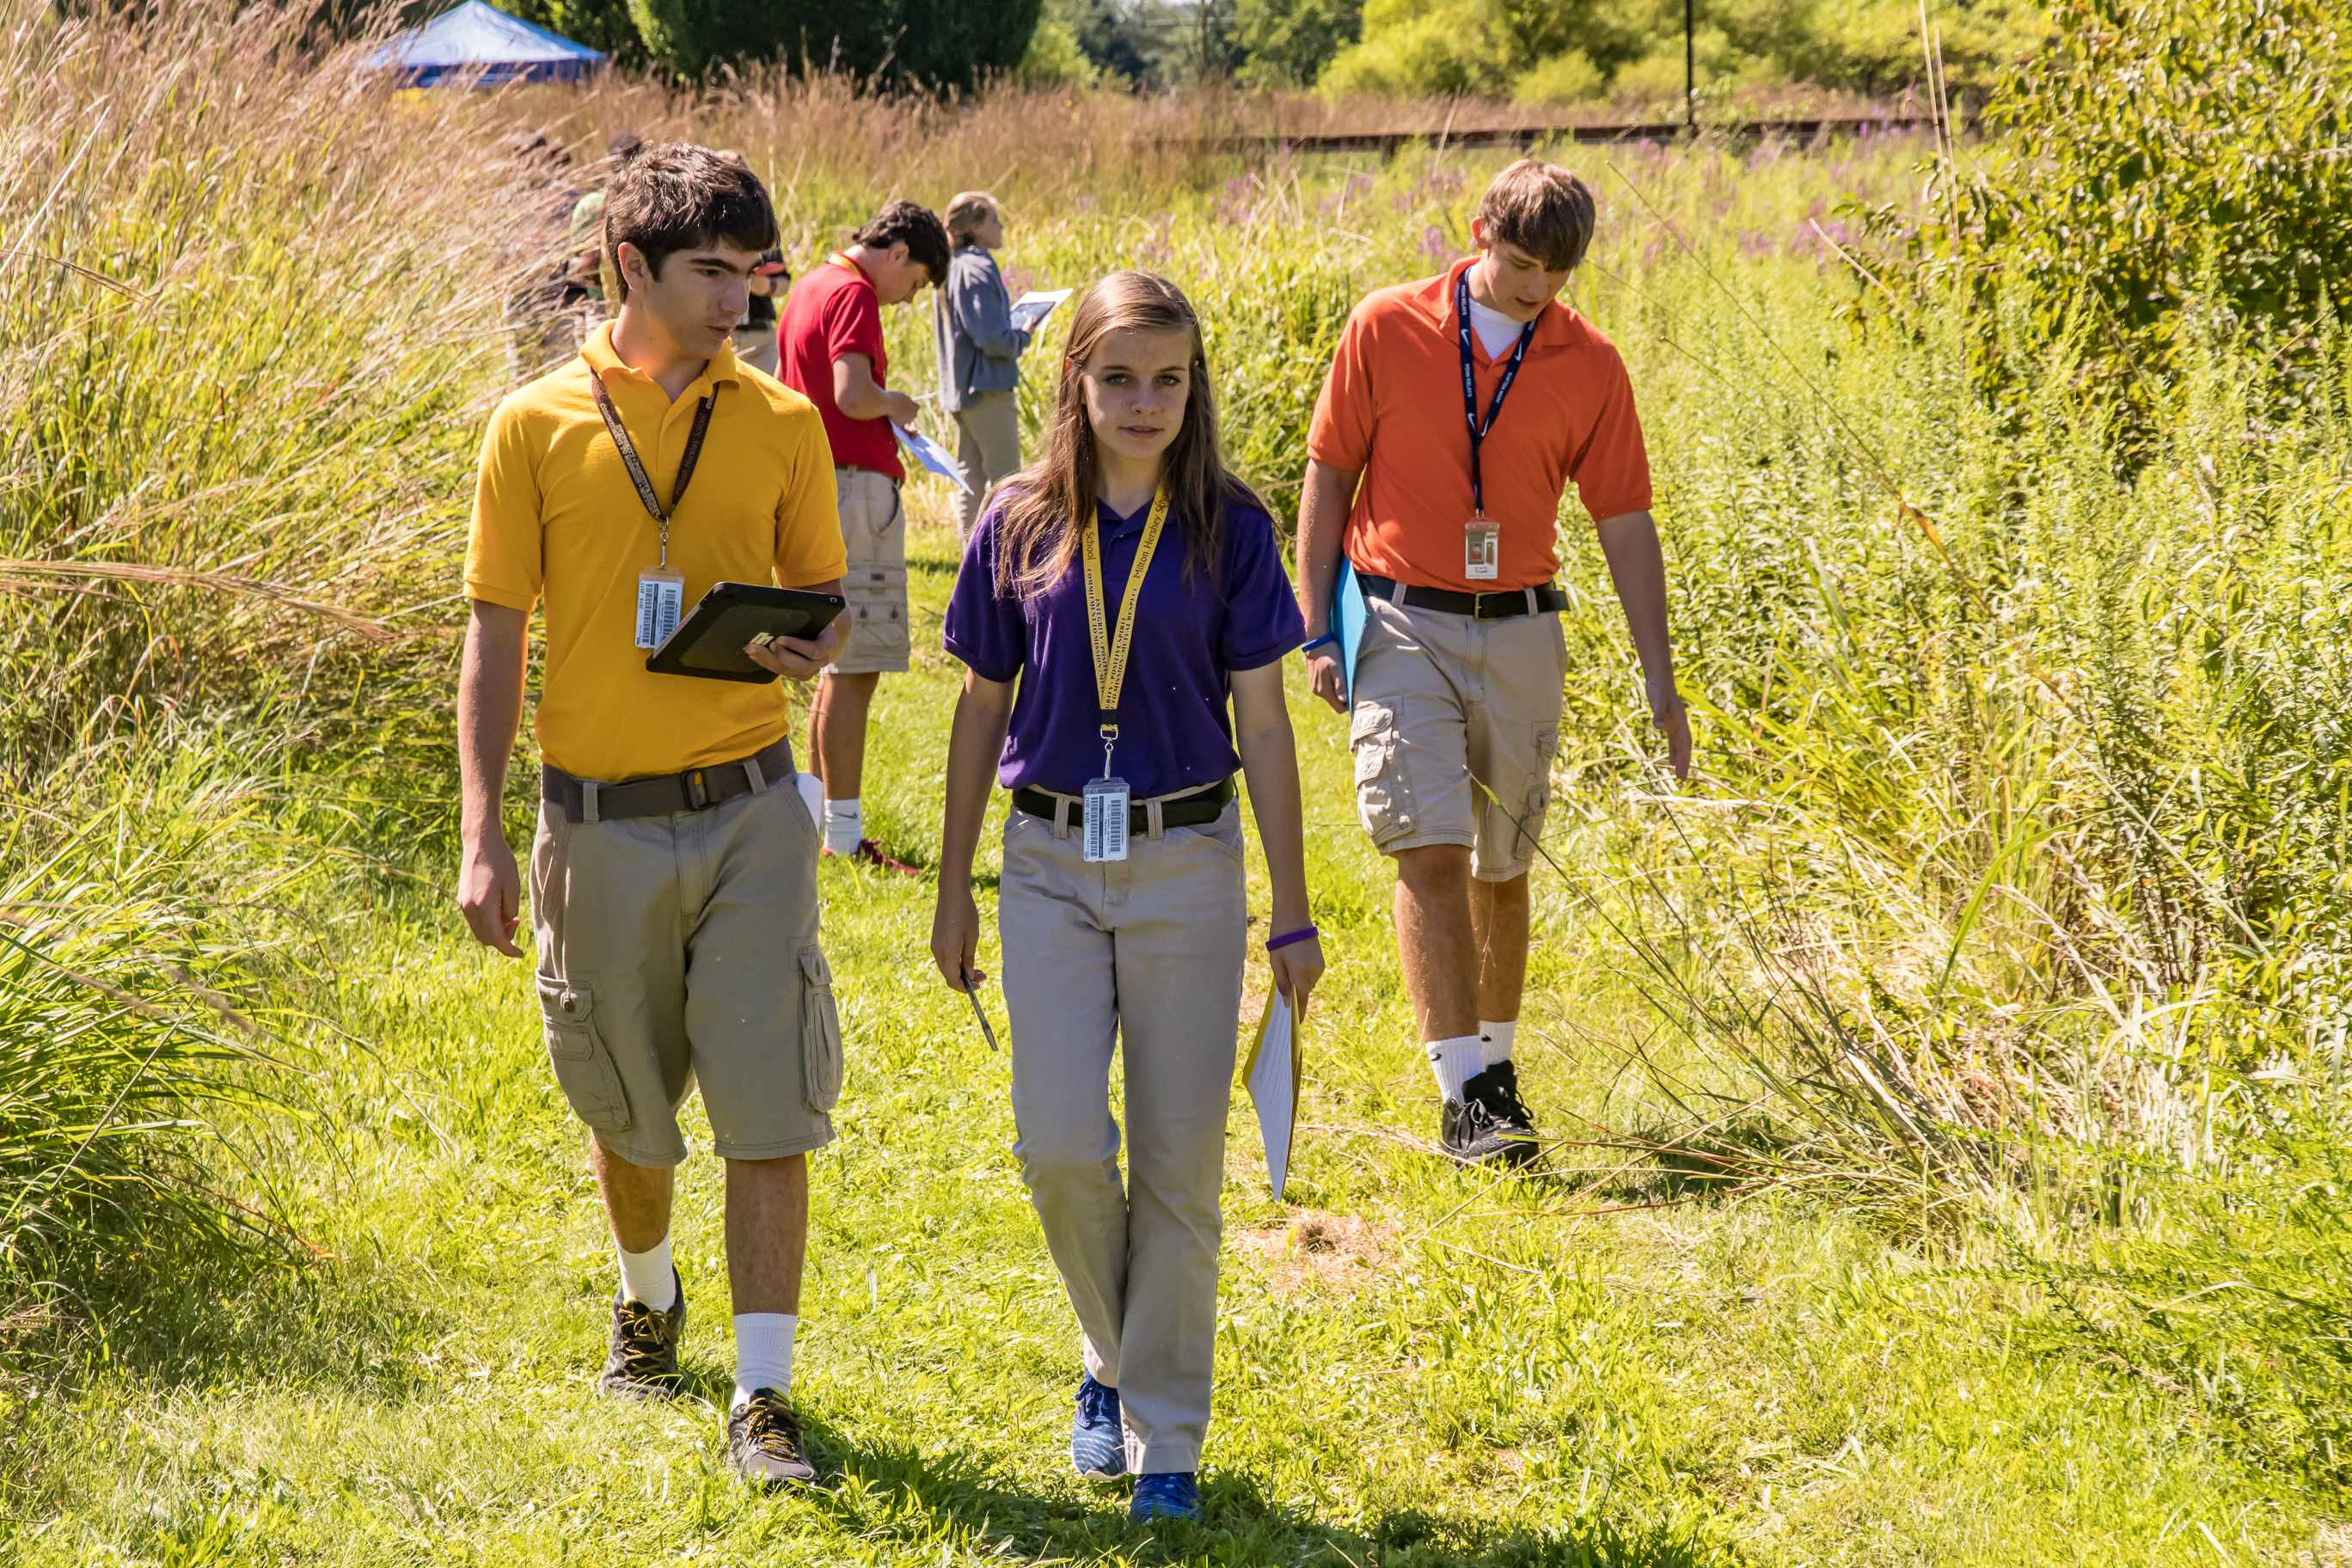 During the second week of the 2016-17 school year, 16 sophomore biology classes were held at Milton Hershey School's Spartan Meadow—a pond and stream area on main campus.